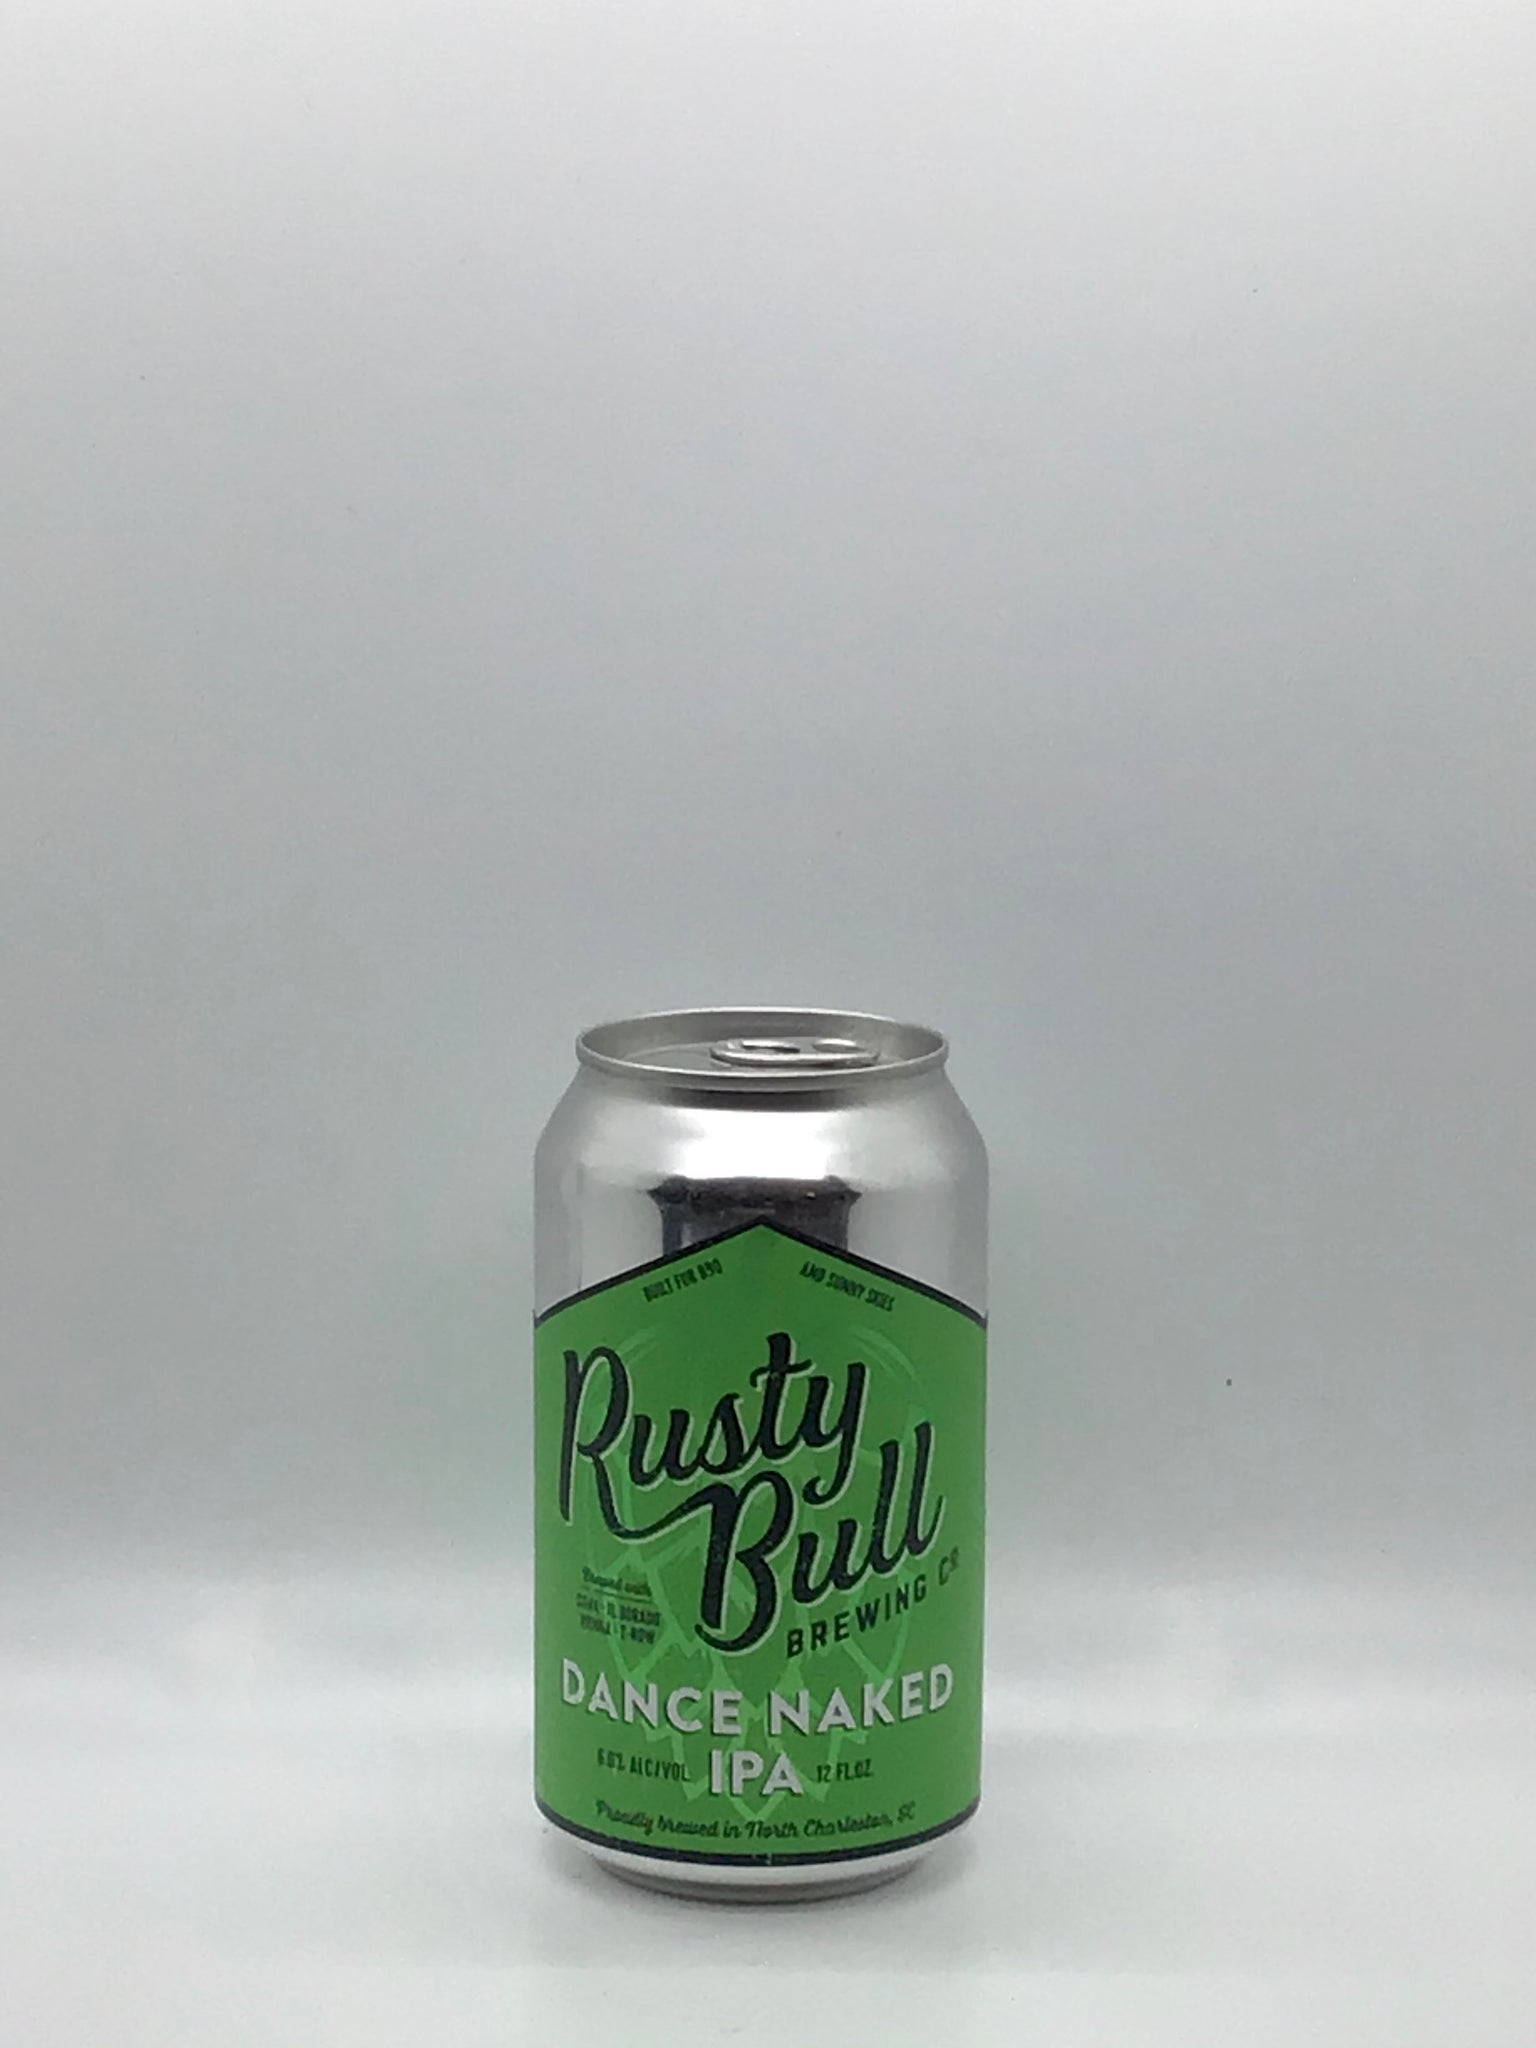 Rusty Bull 'Dance Naked'